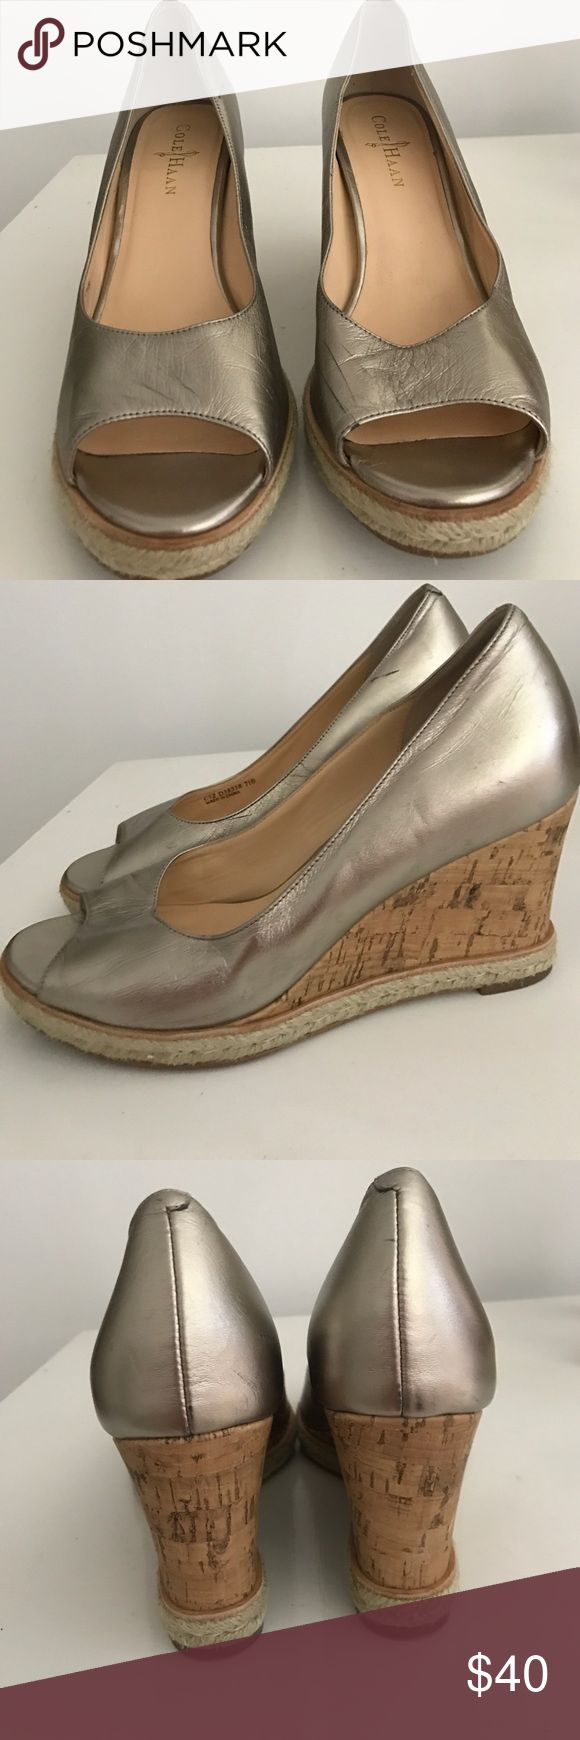 Cole Haan metallic wedges Very comfy, easy to walk in Cole Haan metallic/cork wedges. Worn only a few times, no real signs of wear and tear! Cole Haan Shoes Heels